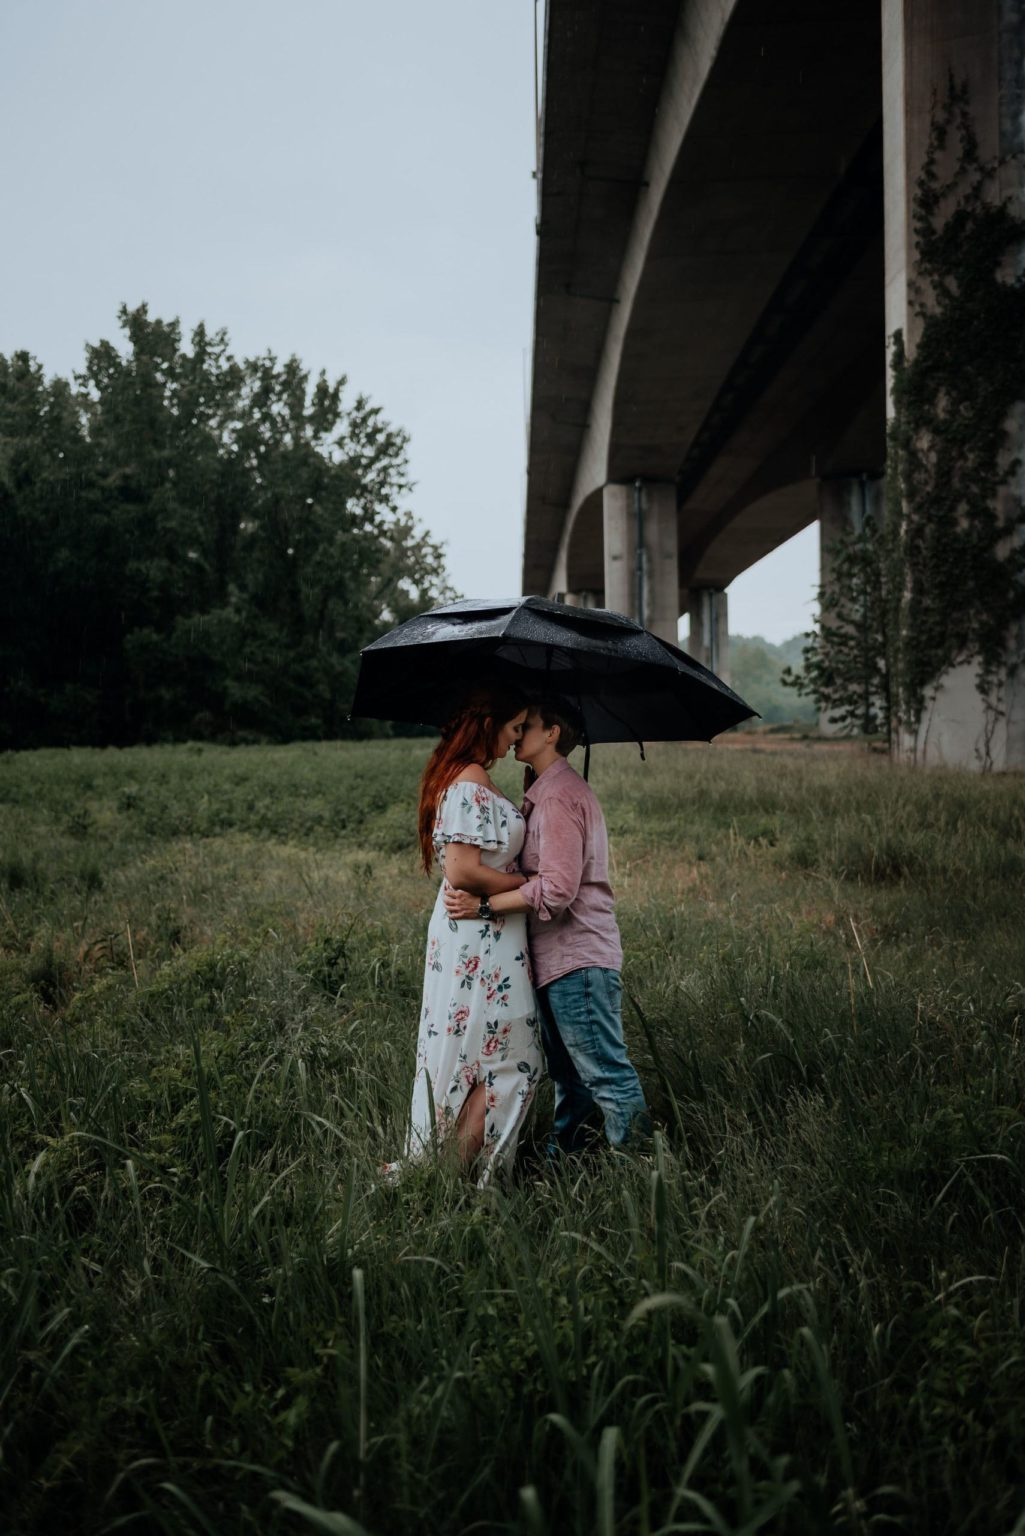 A lesbian couple kisses under a black umbrella in the middle of a field on belle isle in the middle of a rain storm.